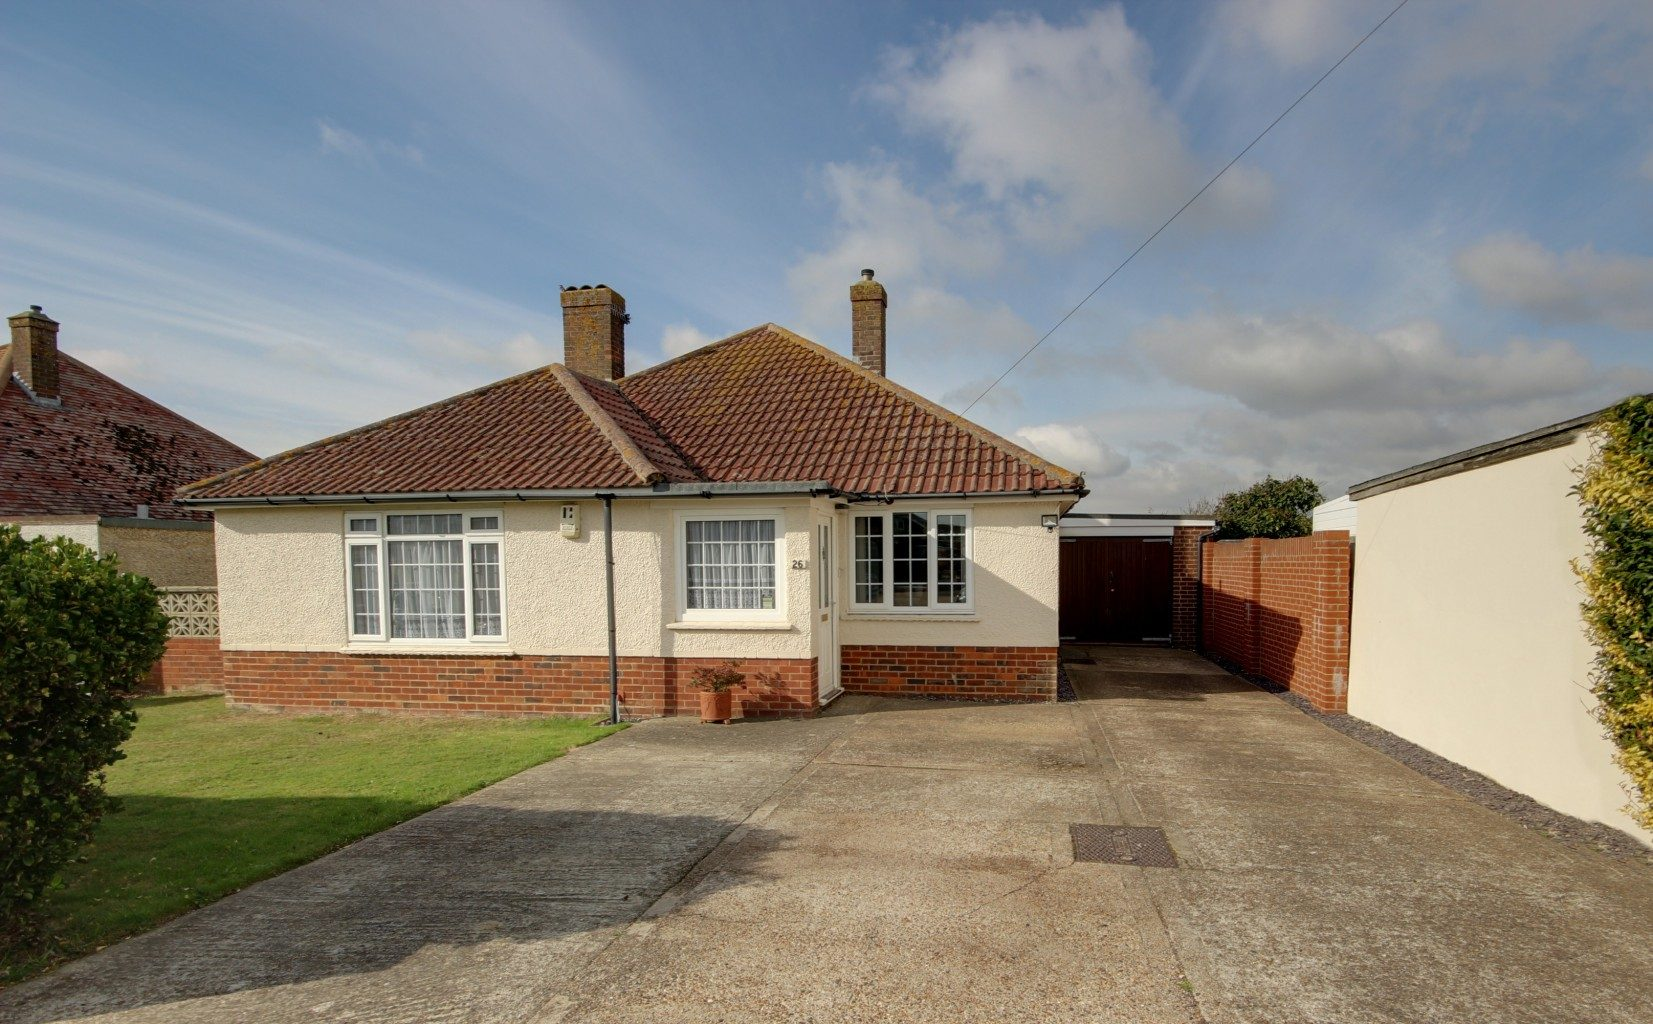 Image of the Outside Bungalow in Peacehaven | Open House Estate Agents Peacehaven